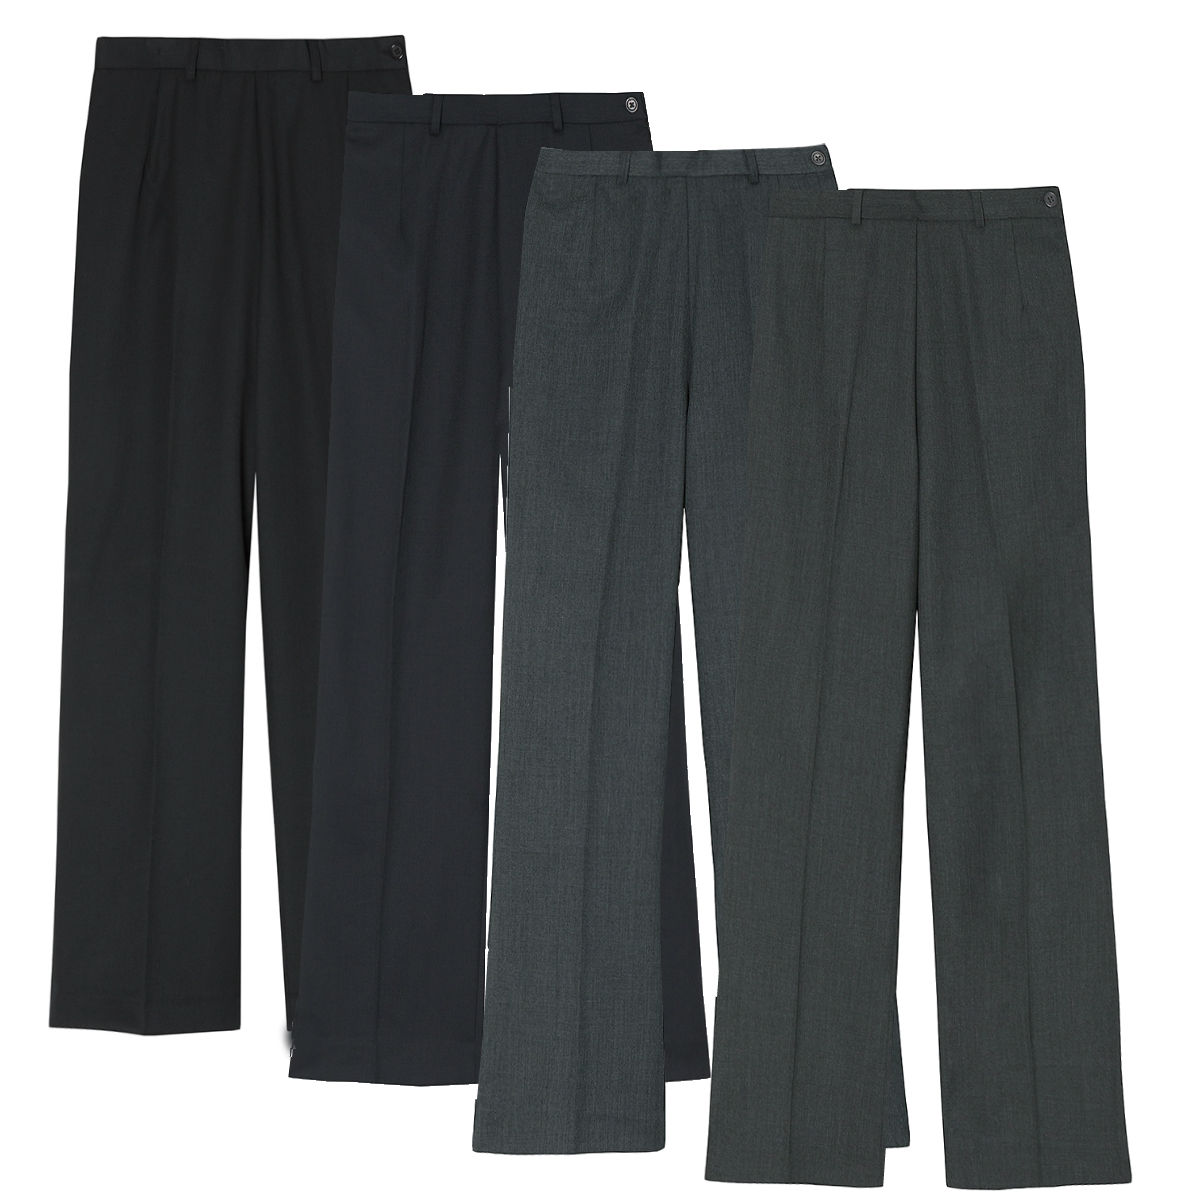 women 39 s flat front work trousers sizes 8 14 bootleg. Black Bedroom Furniture Sets. Home Design Ideas